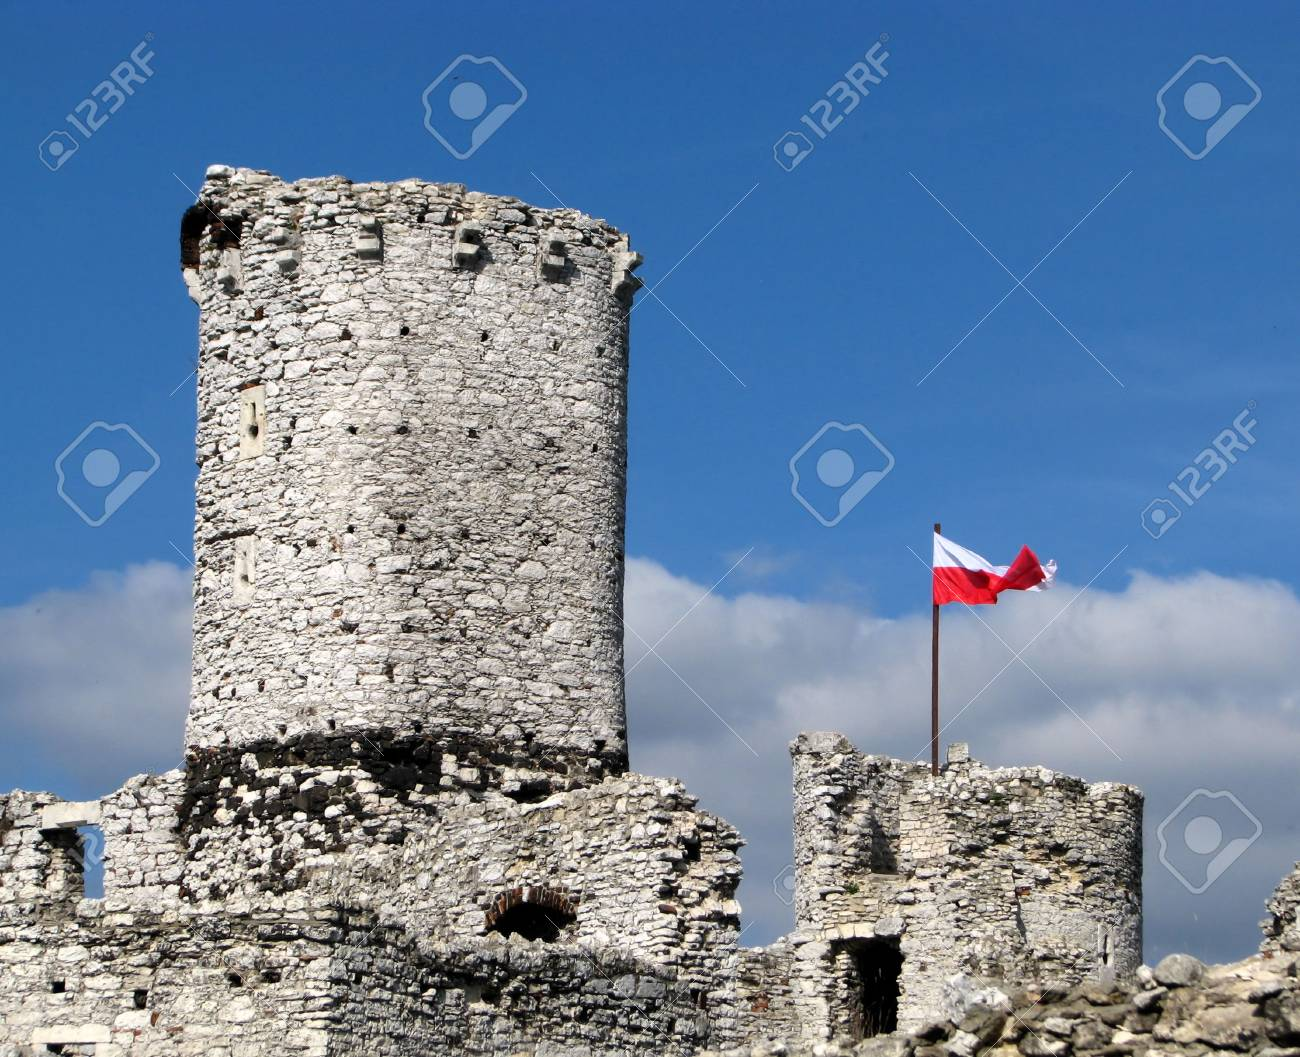 The old castle ruins of Ogrodzieniec fortifications, Poland Stock Photo - 8800917